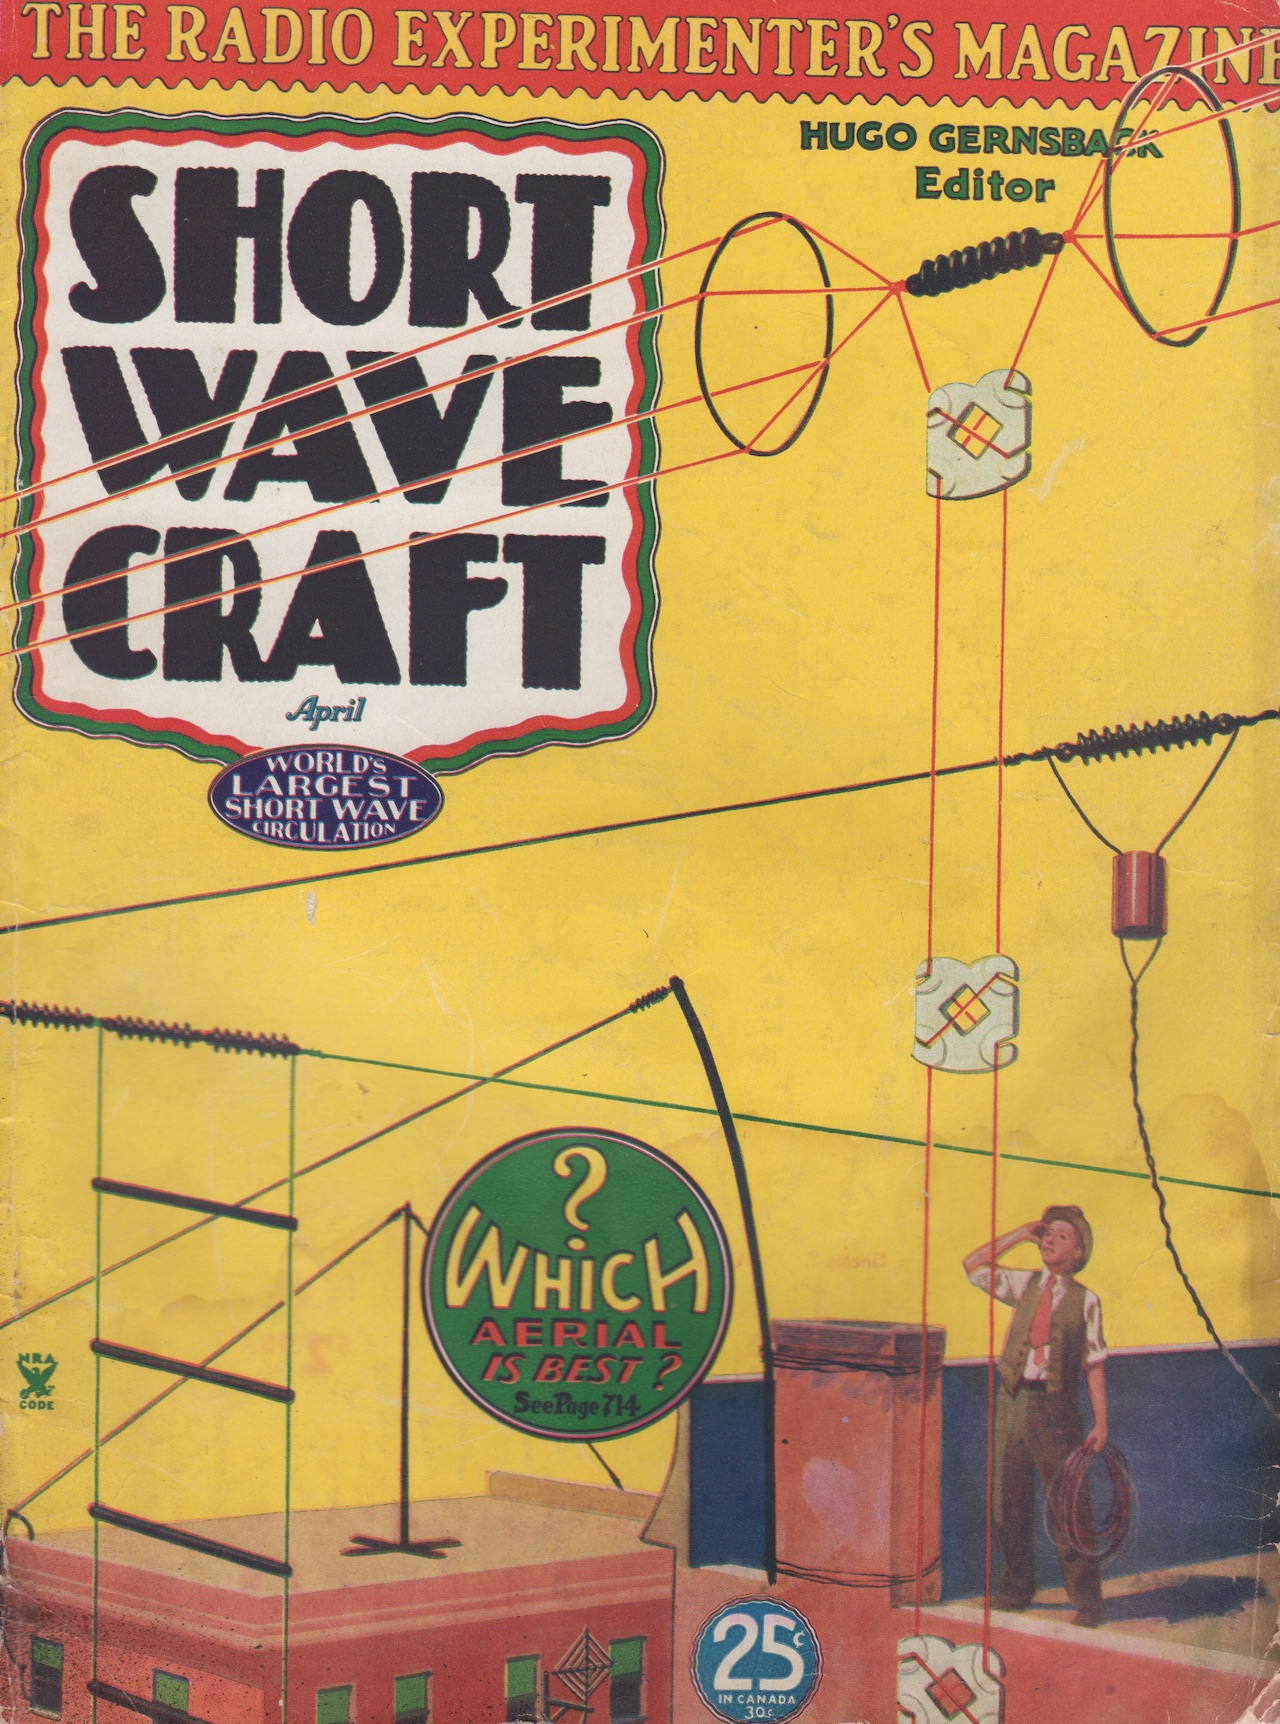 April 1935 issue of  Short Wave Craft  magazine ( Novak Archive )